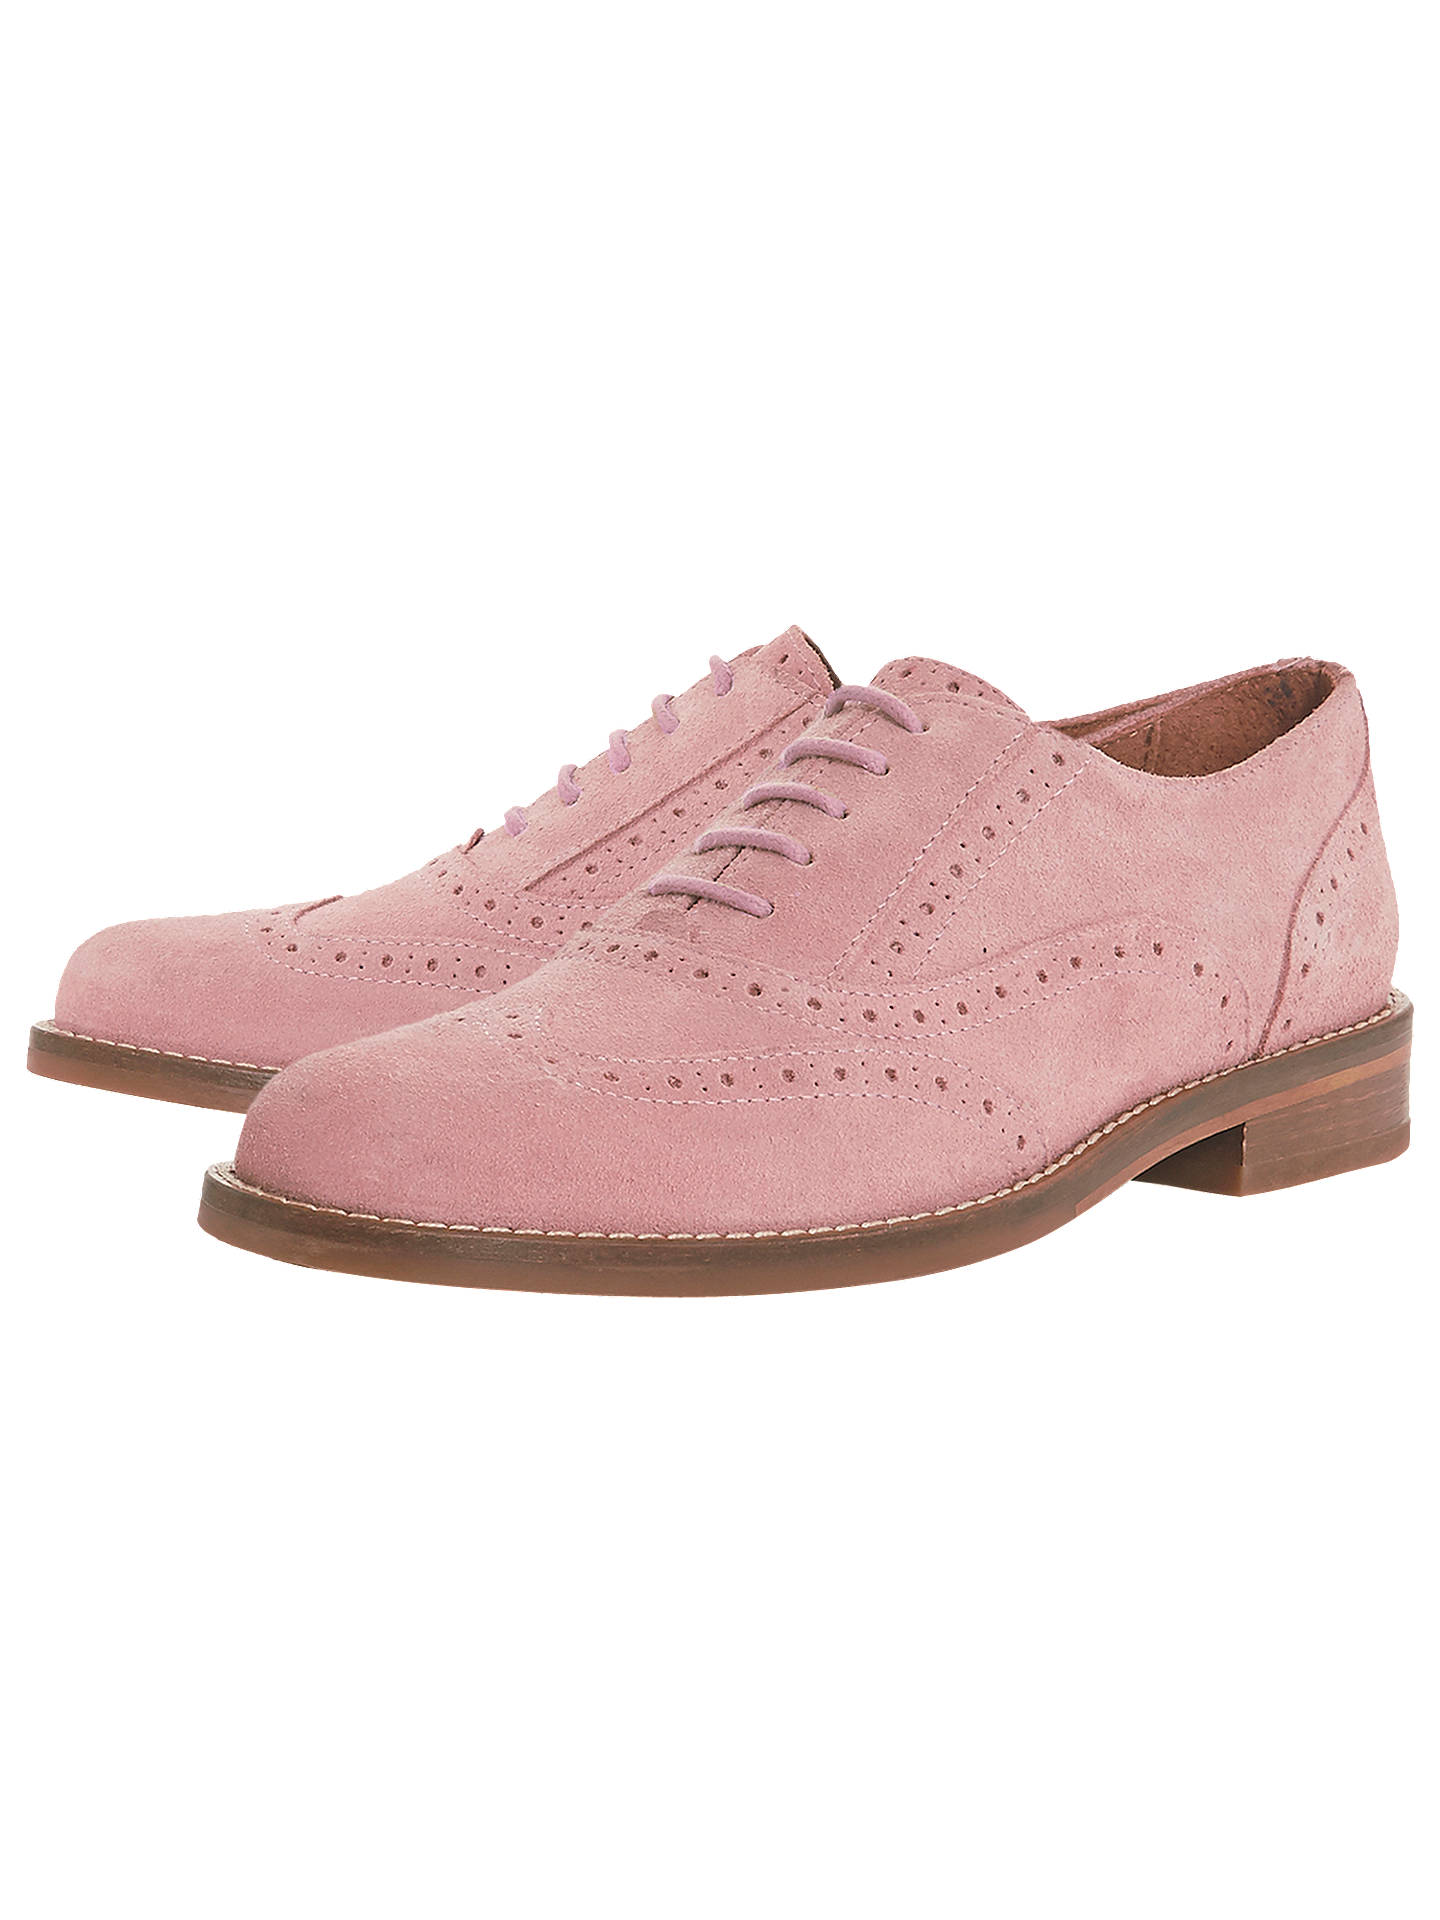 Buy Bertie Fae Lace Up Brogues, Blush, 3 Online at johnlewis.com